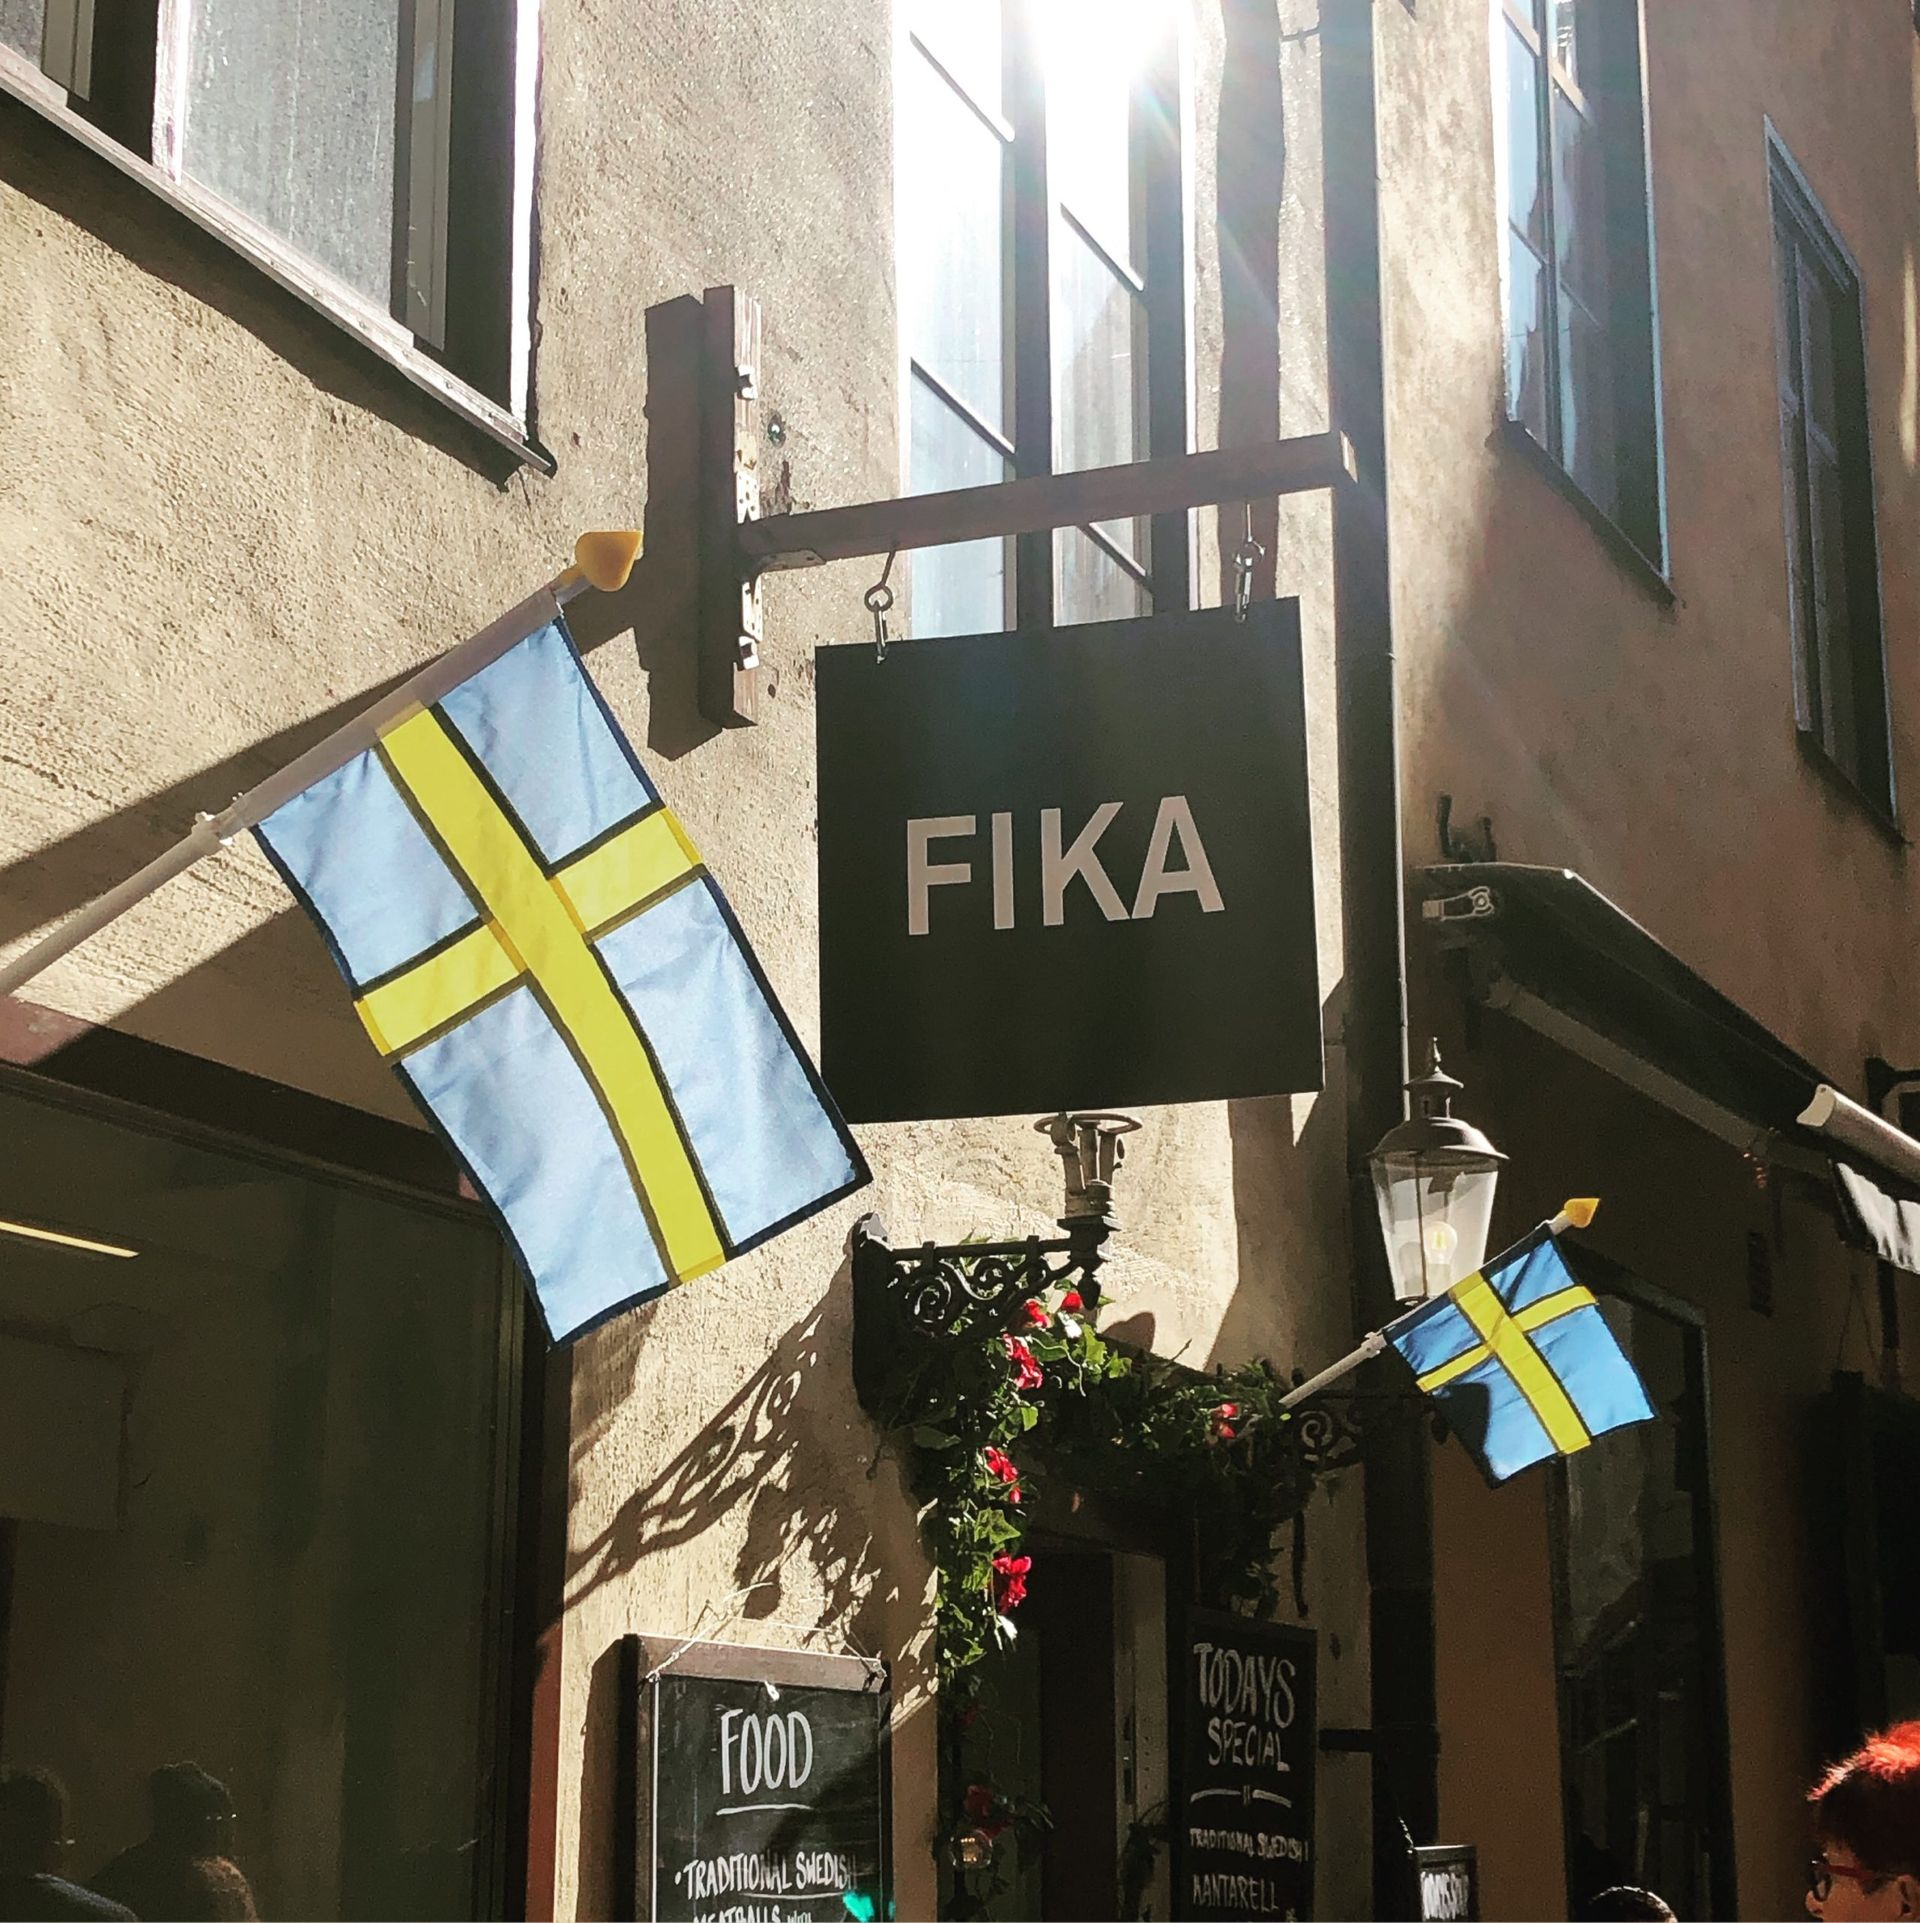 A cafe in central Stockholm called 'Fika'.